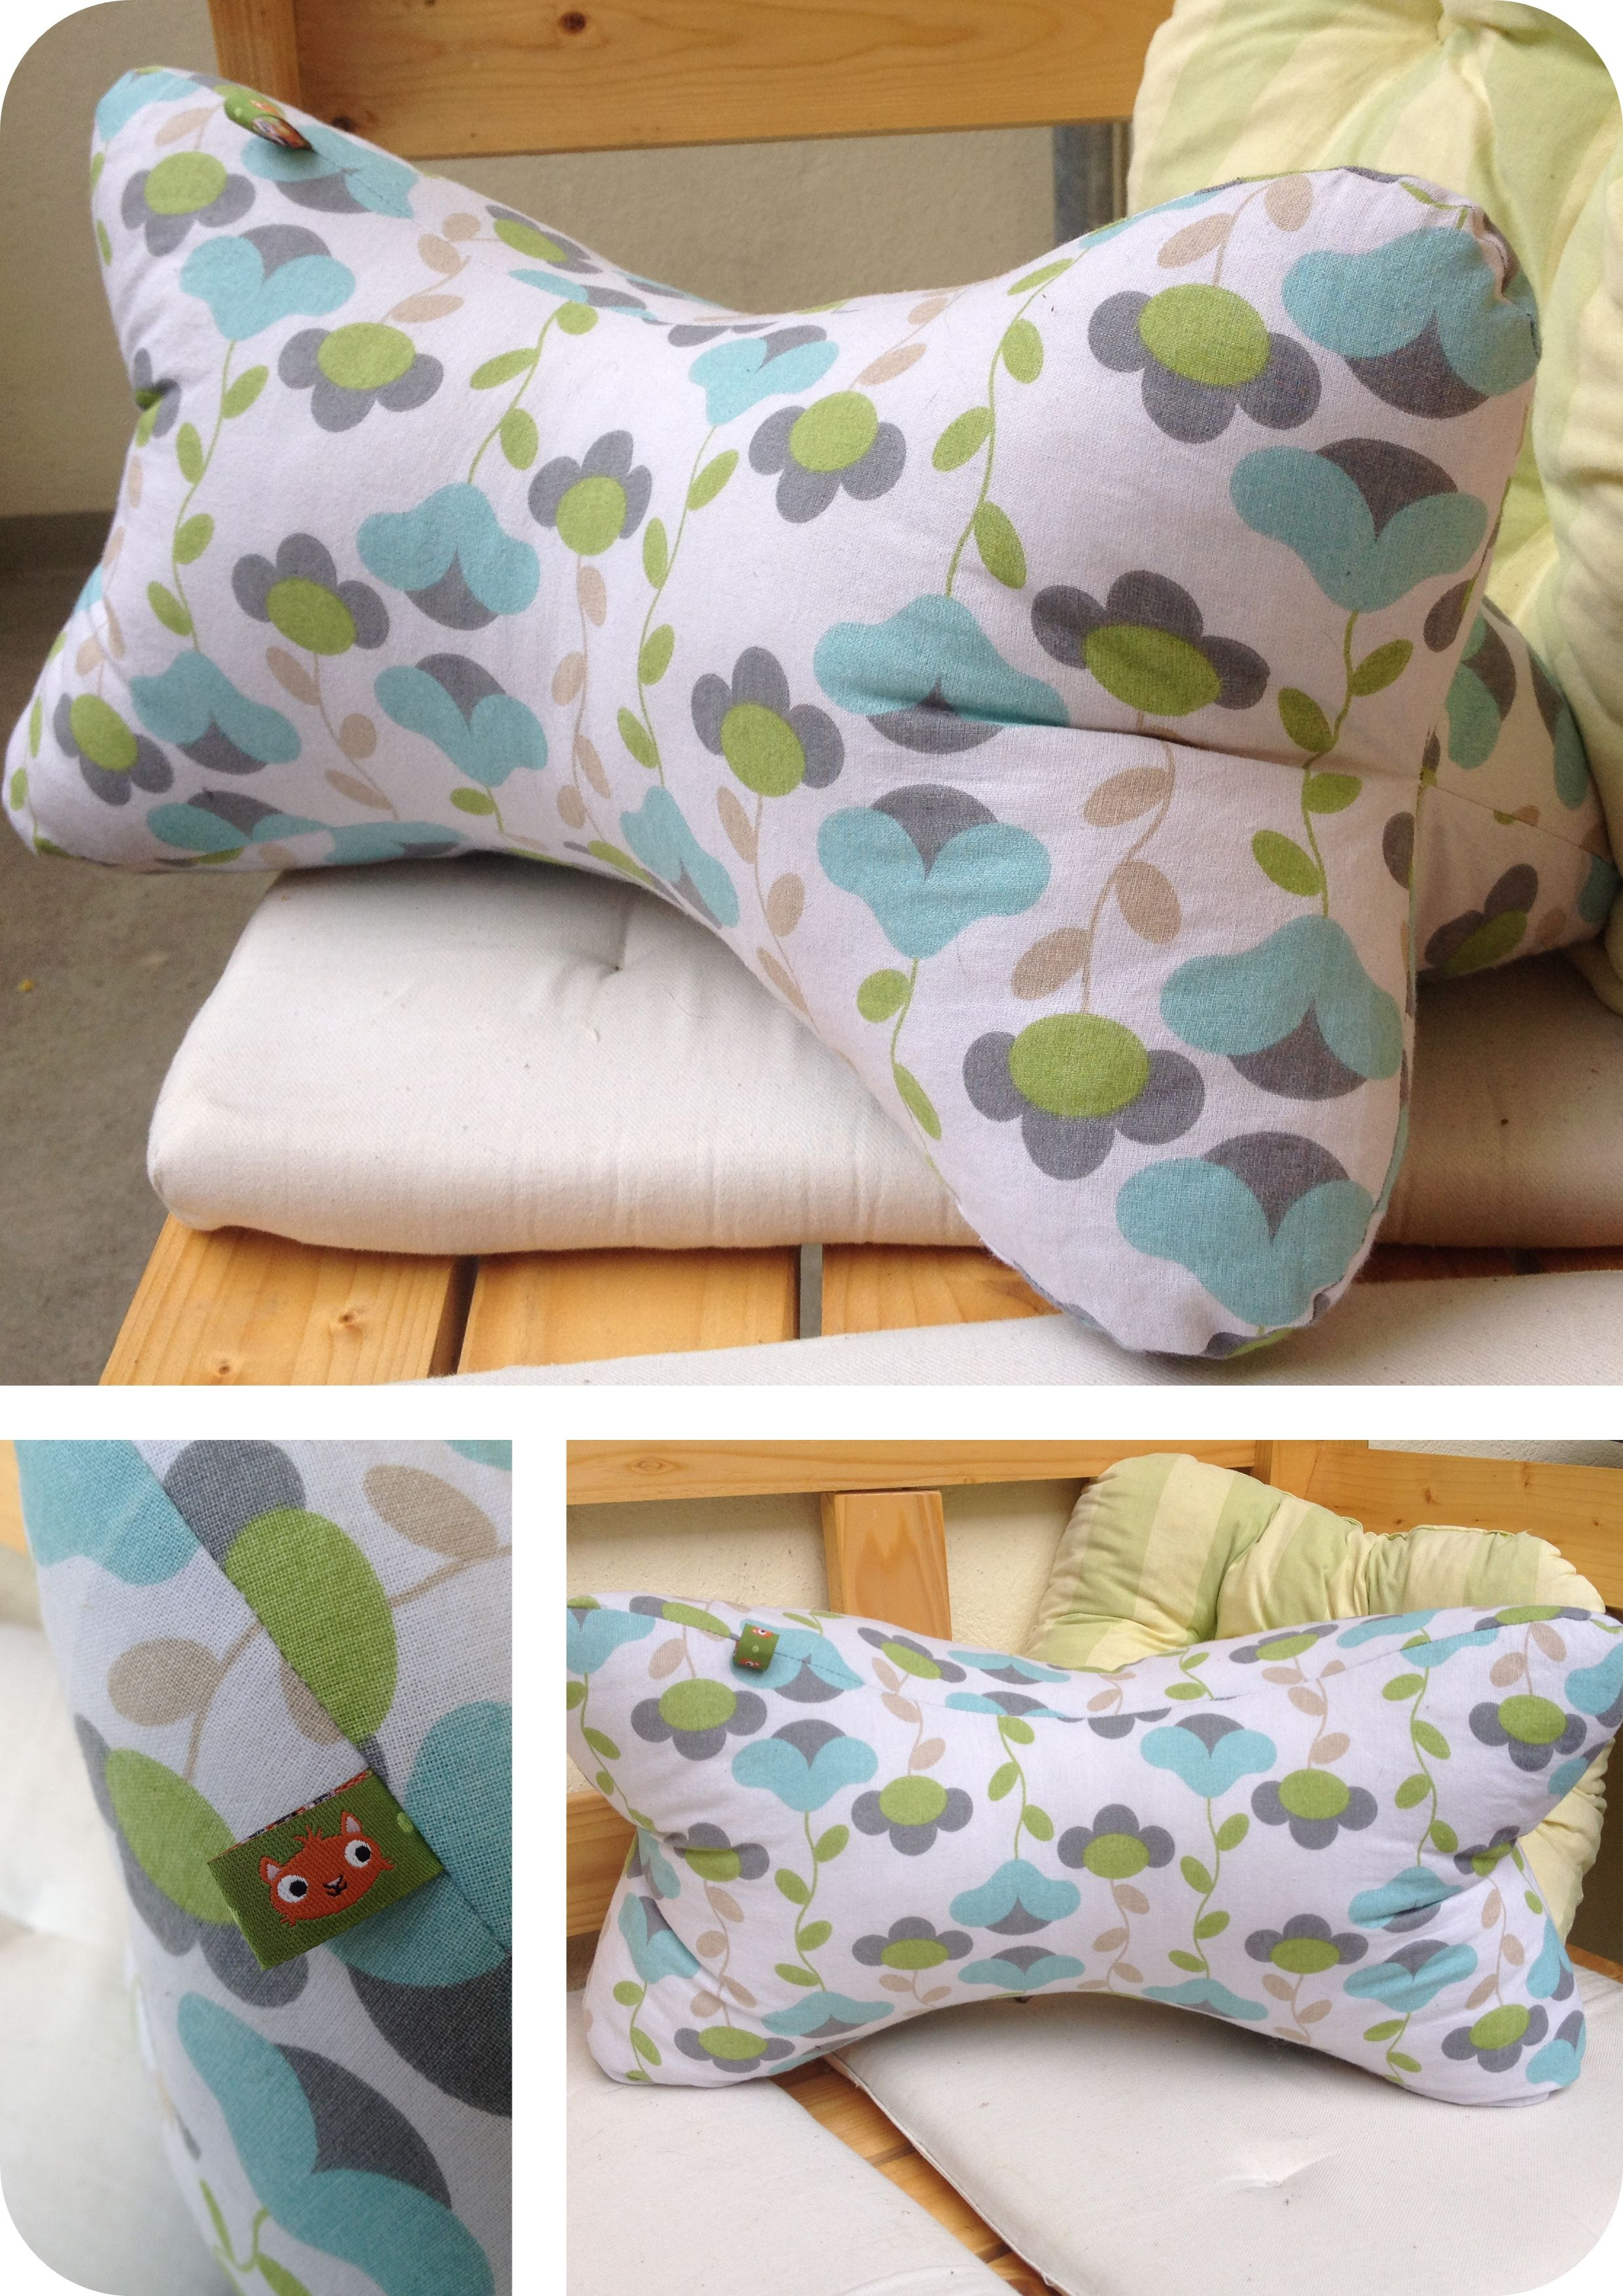 """""""Leseknochen"""" // """"relaxing neck pillow"""" (http://www.sew4home.com/projects/pillows-cushions/last-minute-gift-pillows-relaxing-neck-pillow)"""